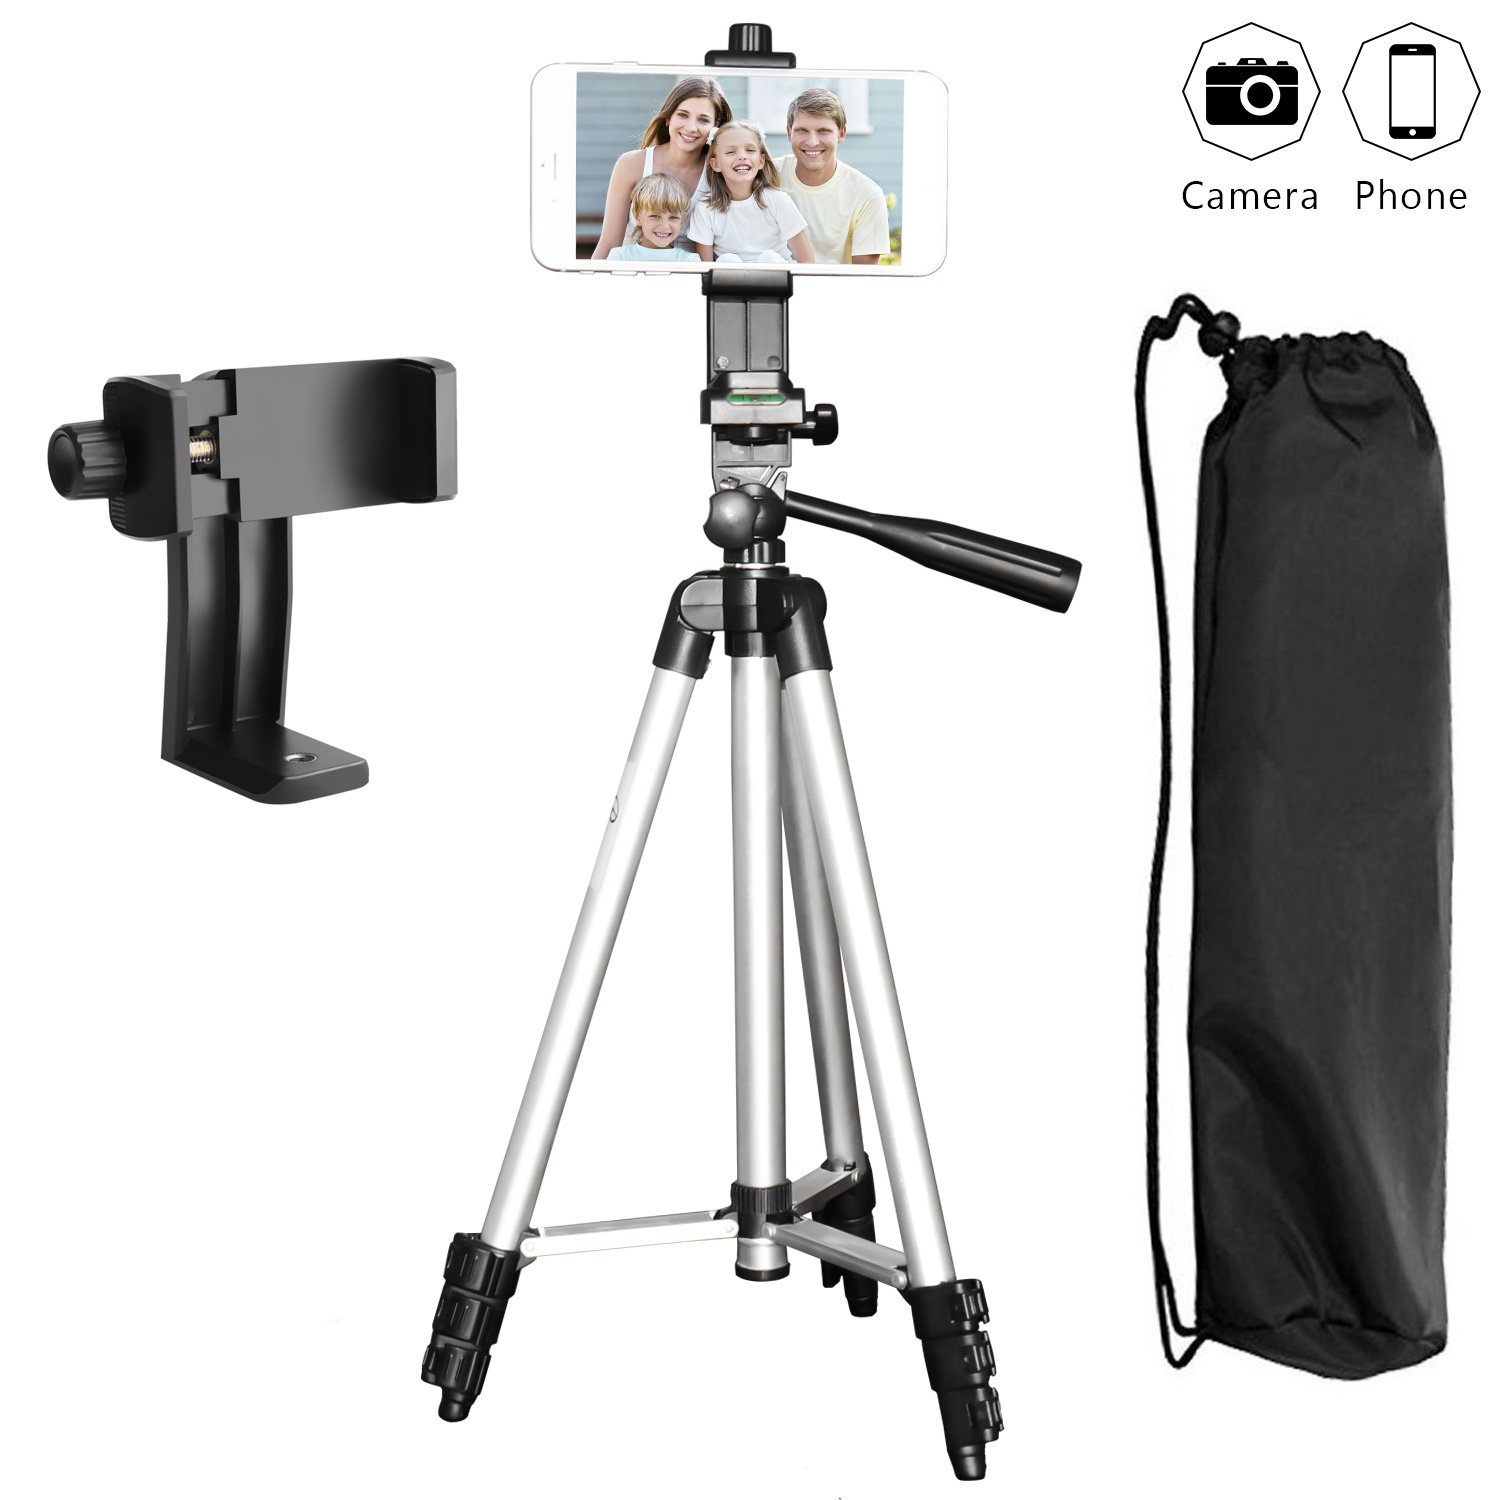 Phone Tripod, PEYOU 50'' Aluminum Camera Tripod + 360°Rotation Smartphone Holder Mount Compatible for iPhone X/8/8 Plus/7/7 Plus/6s/6 Plus, Compatible for Samsung Galaxy Note 8/S9 Plus/S8/S8 Plus/S7 by Peyou